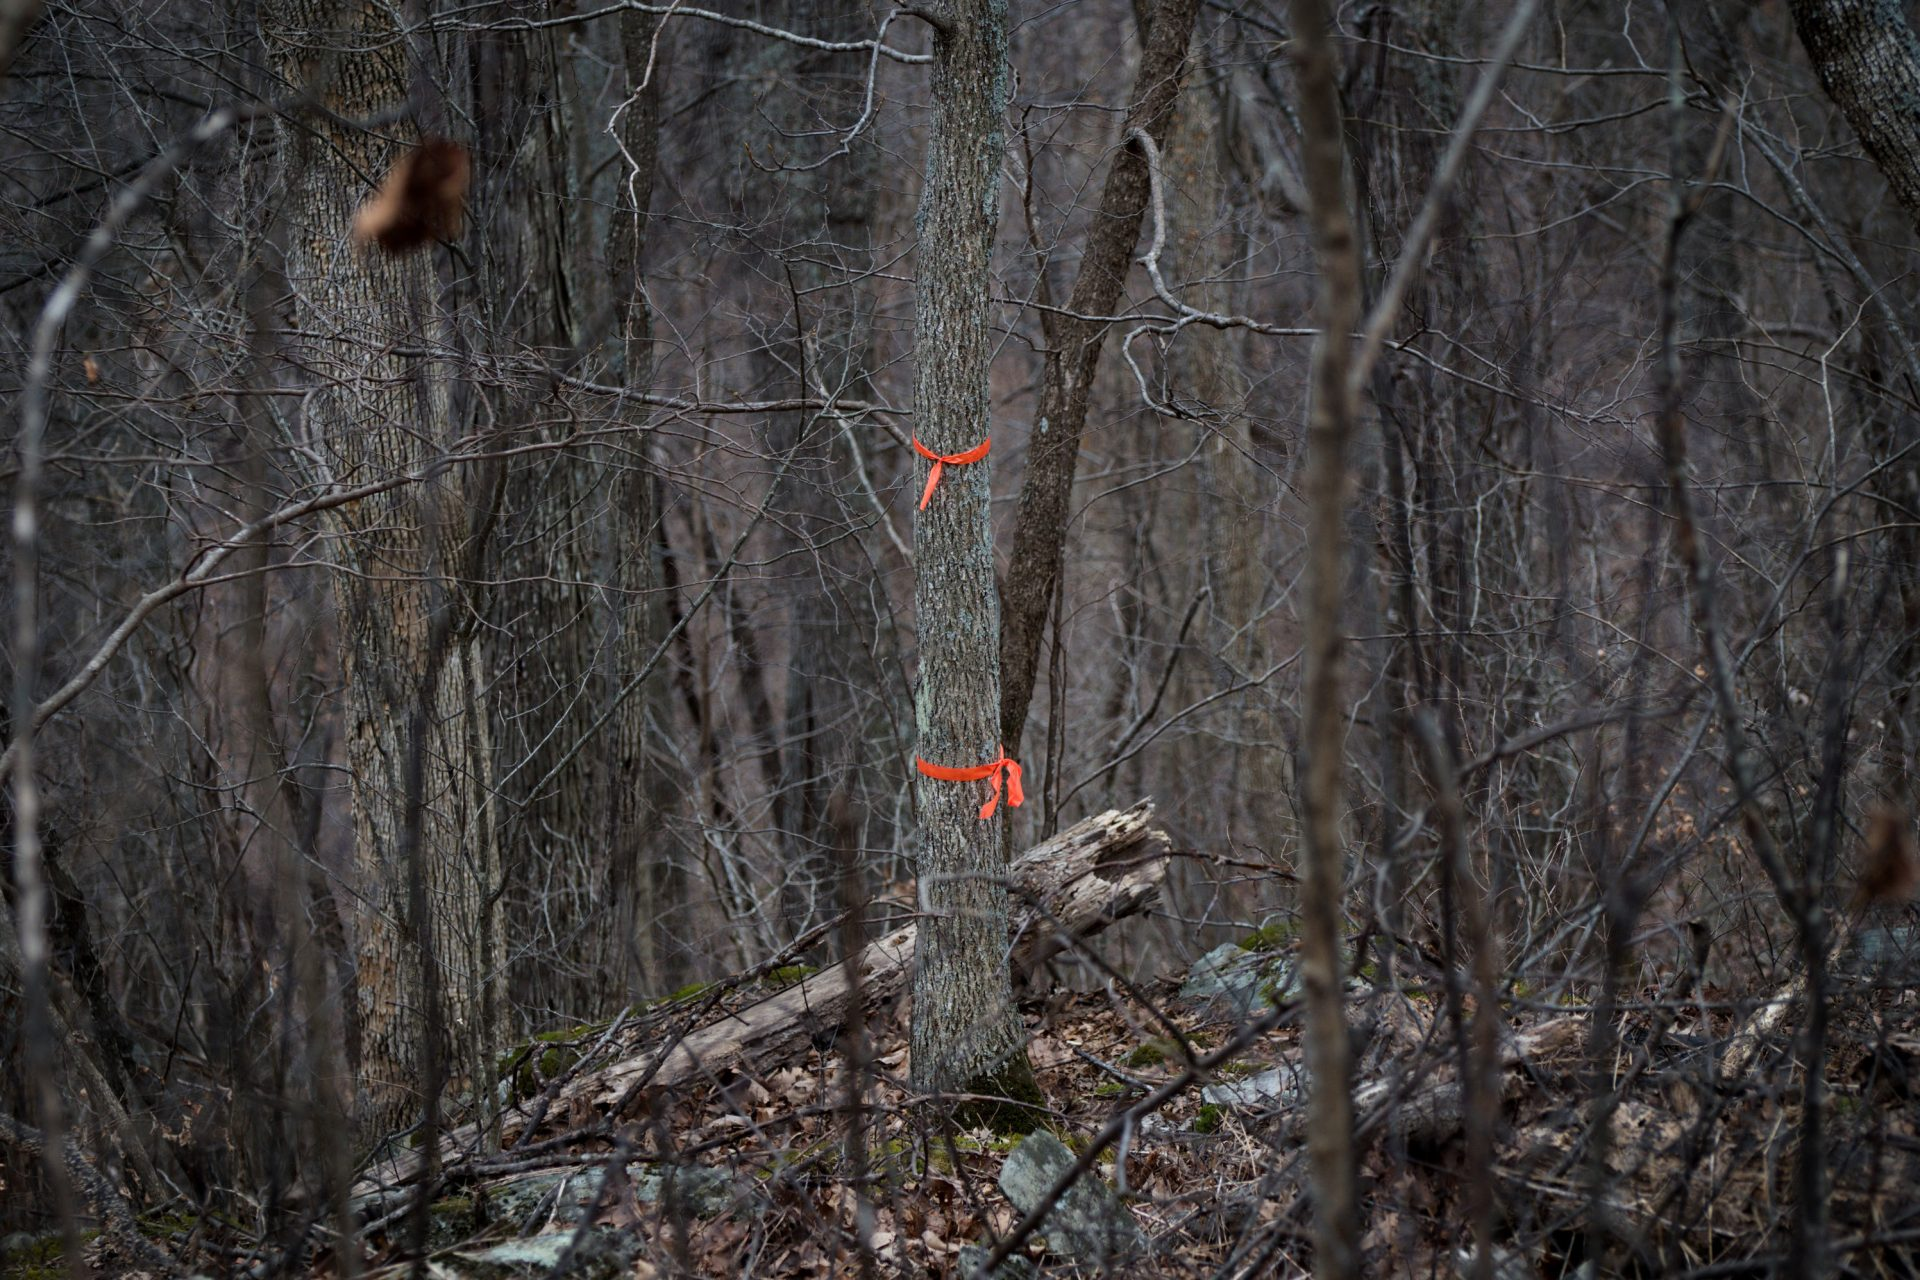 Orange flags near the trail mark the approximate crossing location of the pipeline, which would be tunneled hundreds of feet below ground.